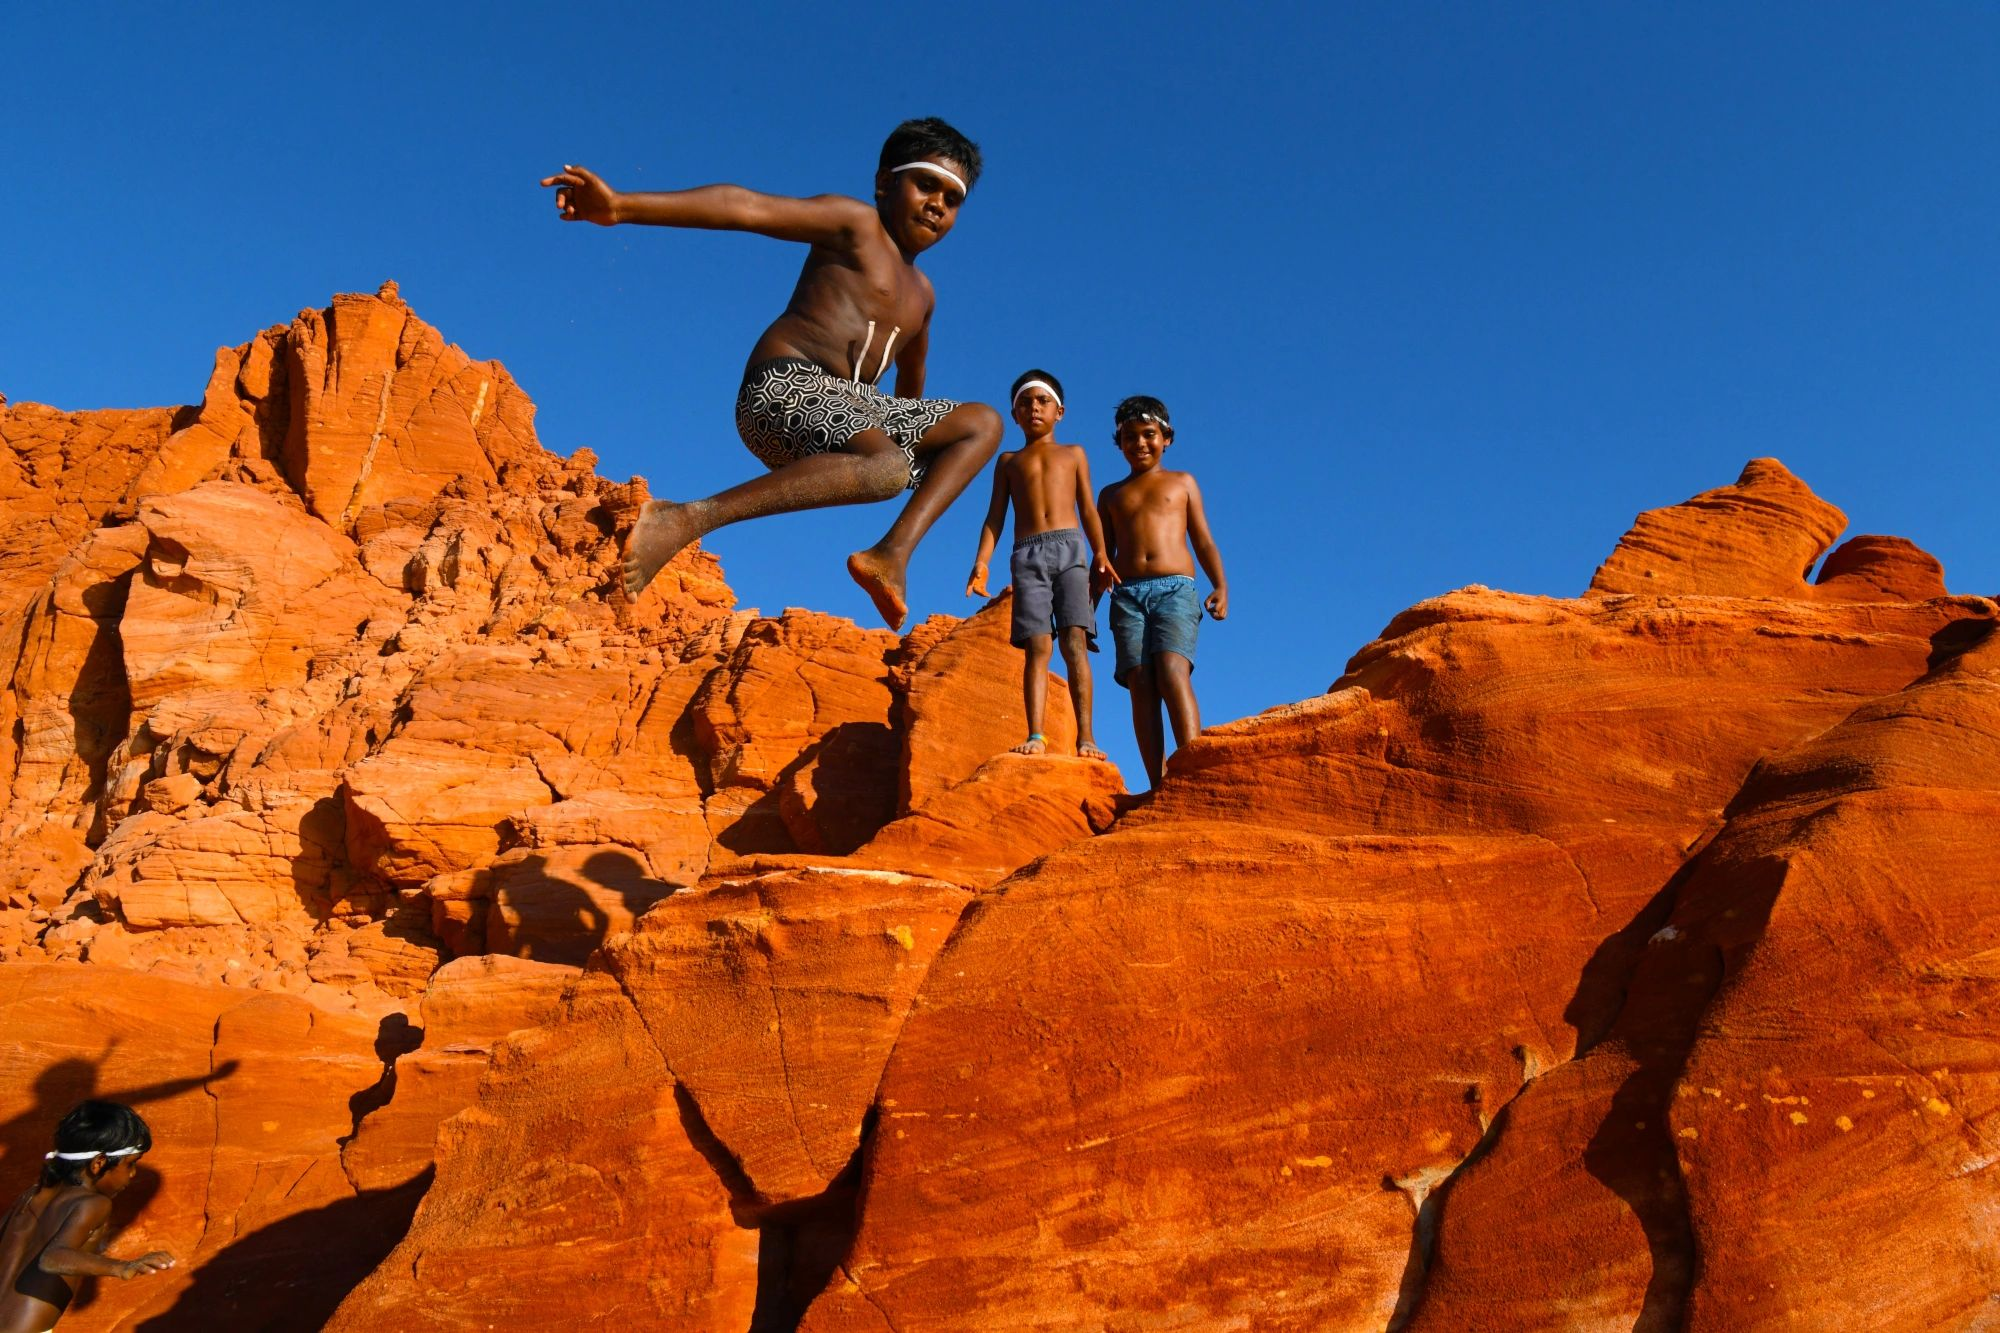 Indigenous photographer Wayne Quilliam captures culturally appropriate photos of Aboriginal people